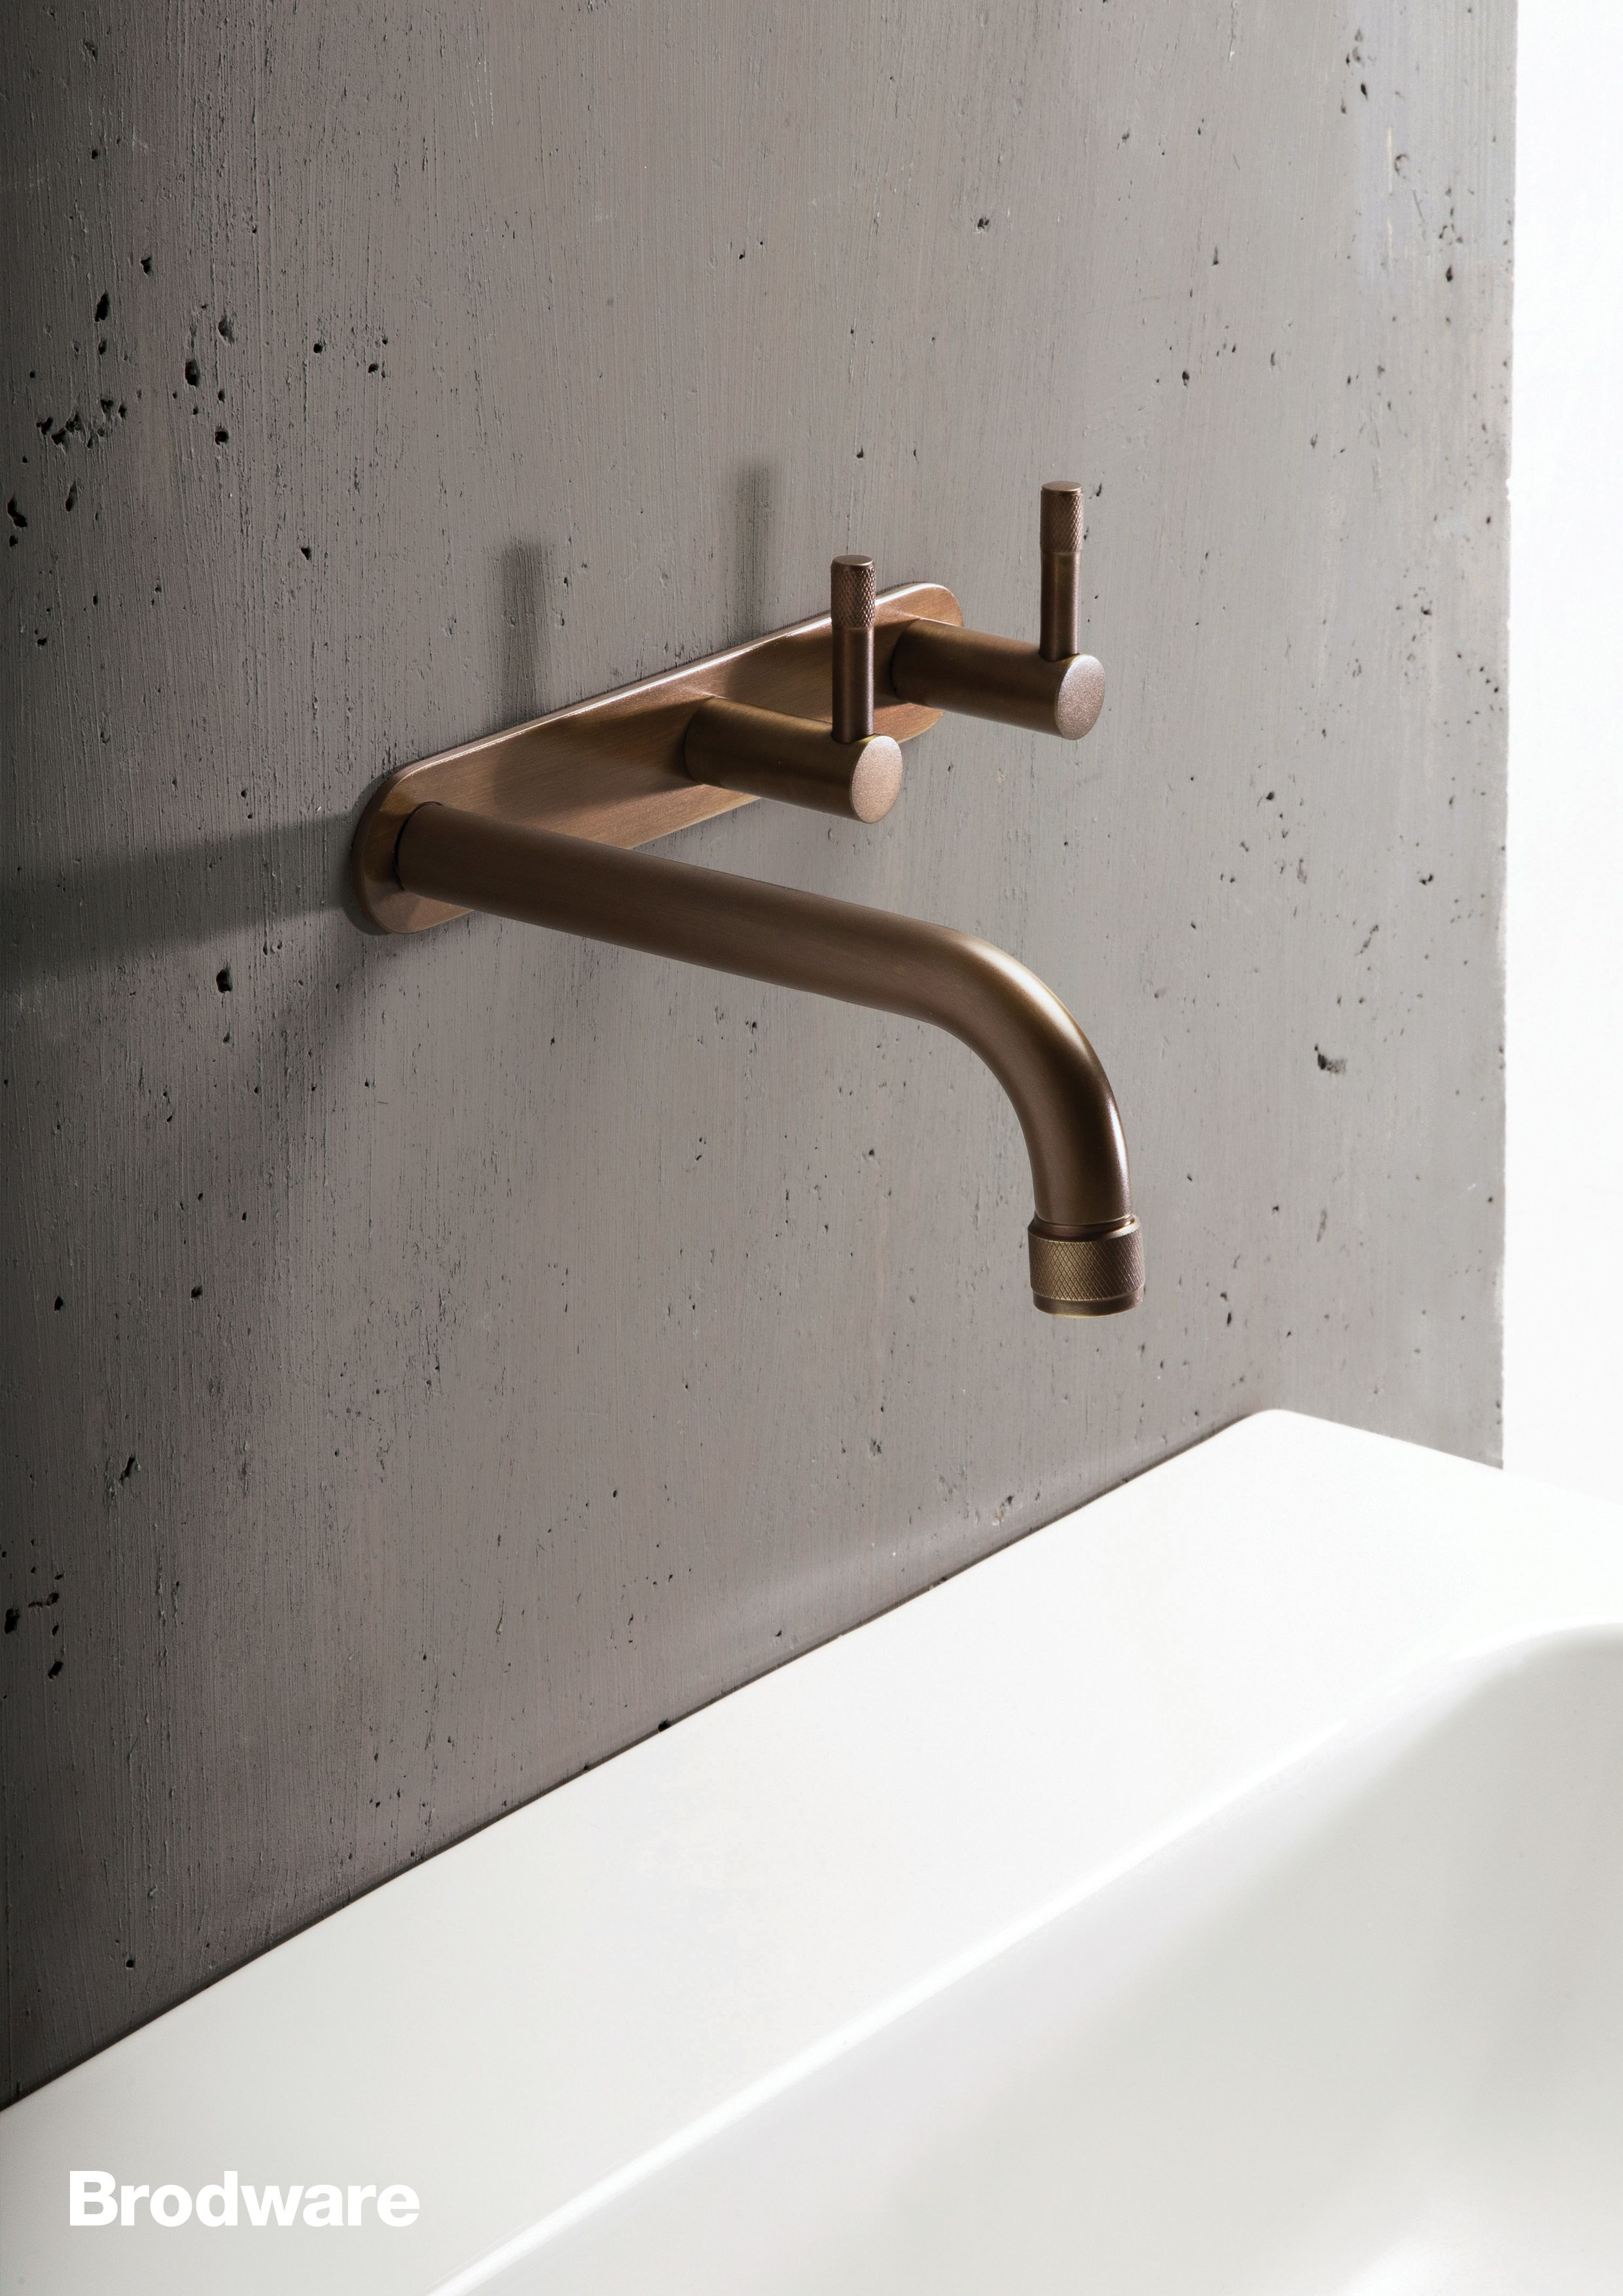 faucet with down handle general to end delta pull trends commercial home brands depot stainless bronze unique dornbracht elio kitchen savile plus kitch faucets high